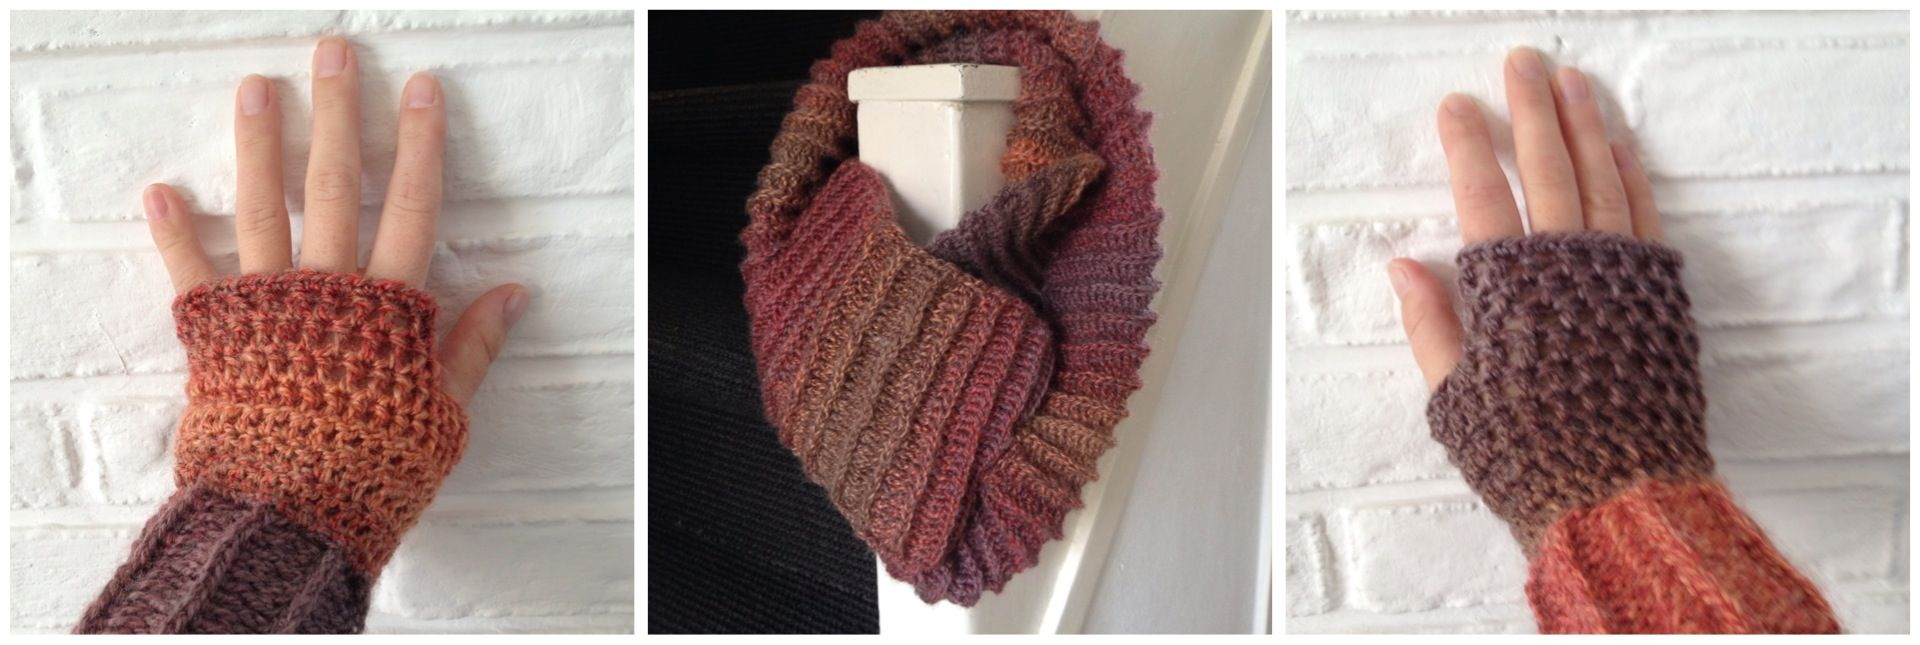 Crochet scarf and fingerless gloves in beautiful autumn colors  Can't wait to wear these!